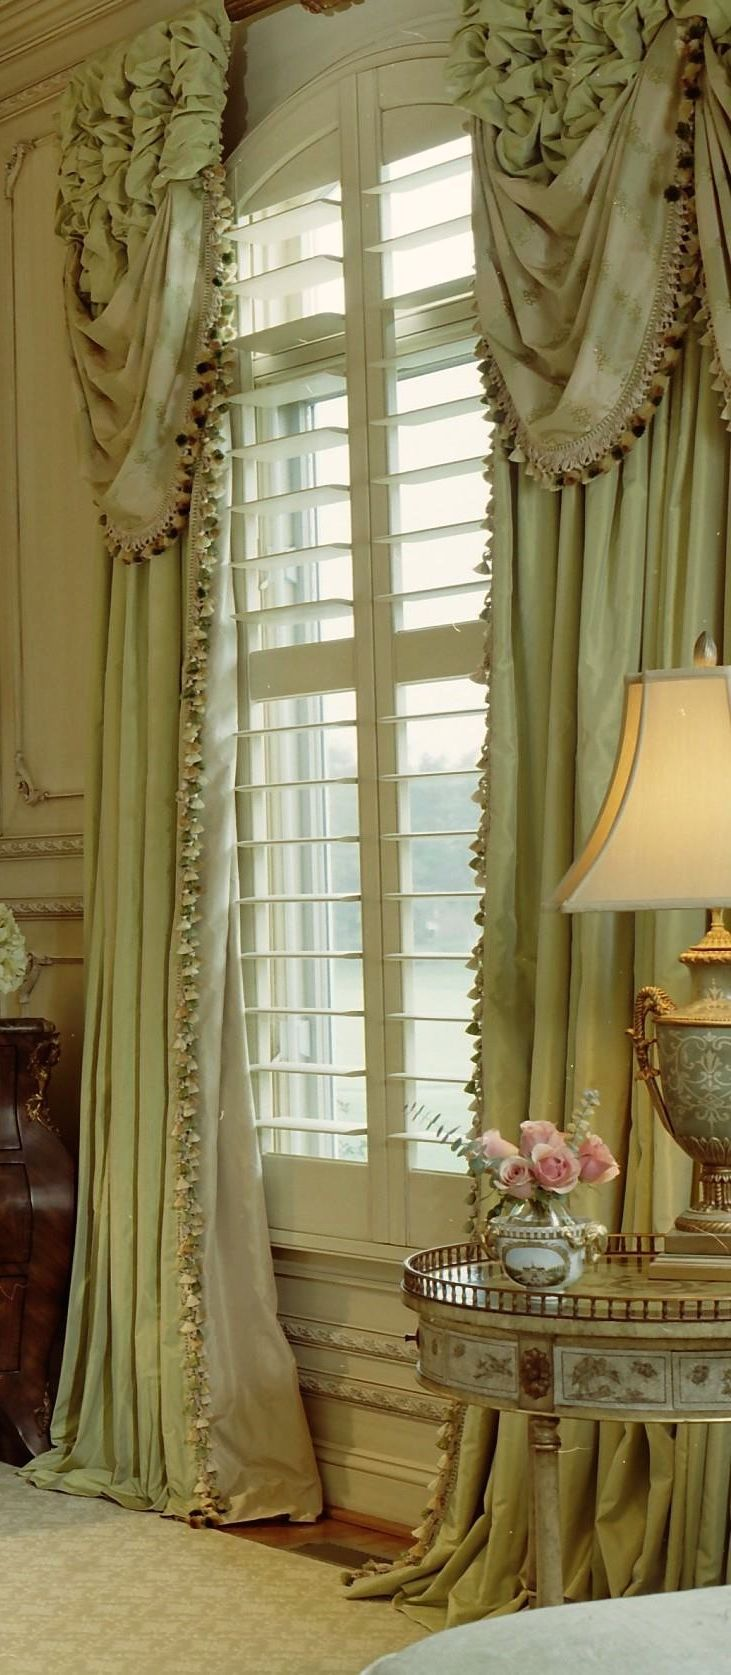 custom ohio curtain story drapery windowaccents copy inc oh becker products cincinnati accents window curtains draperies